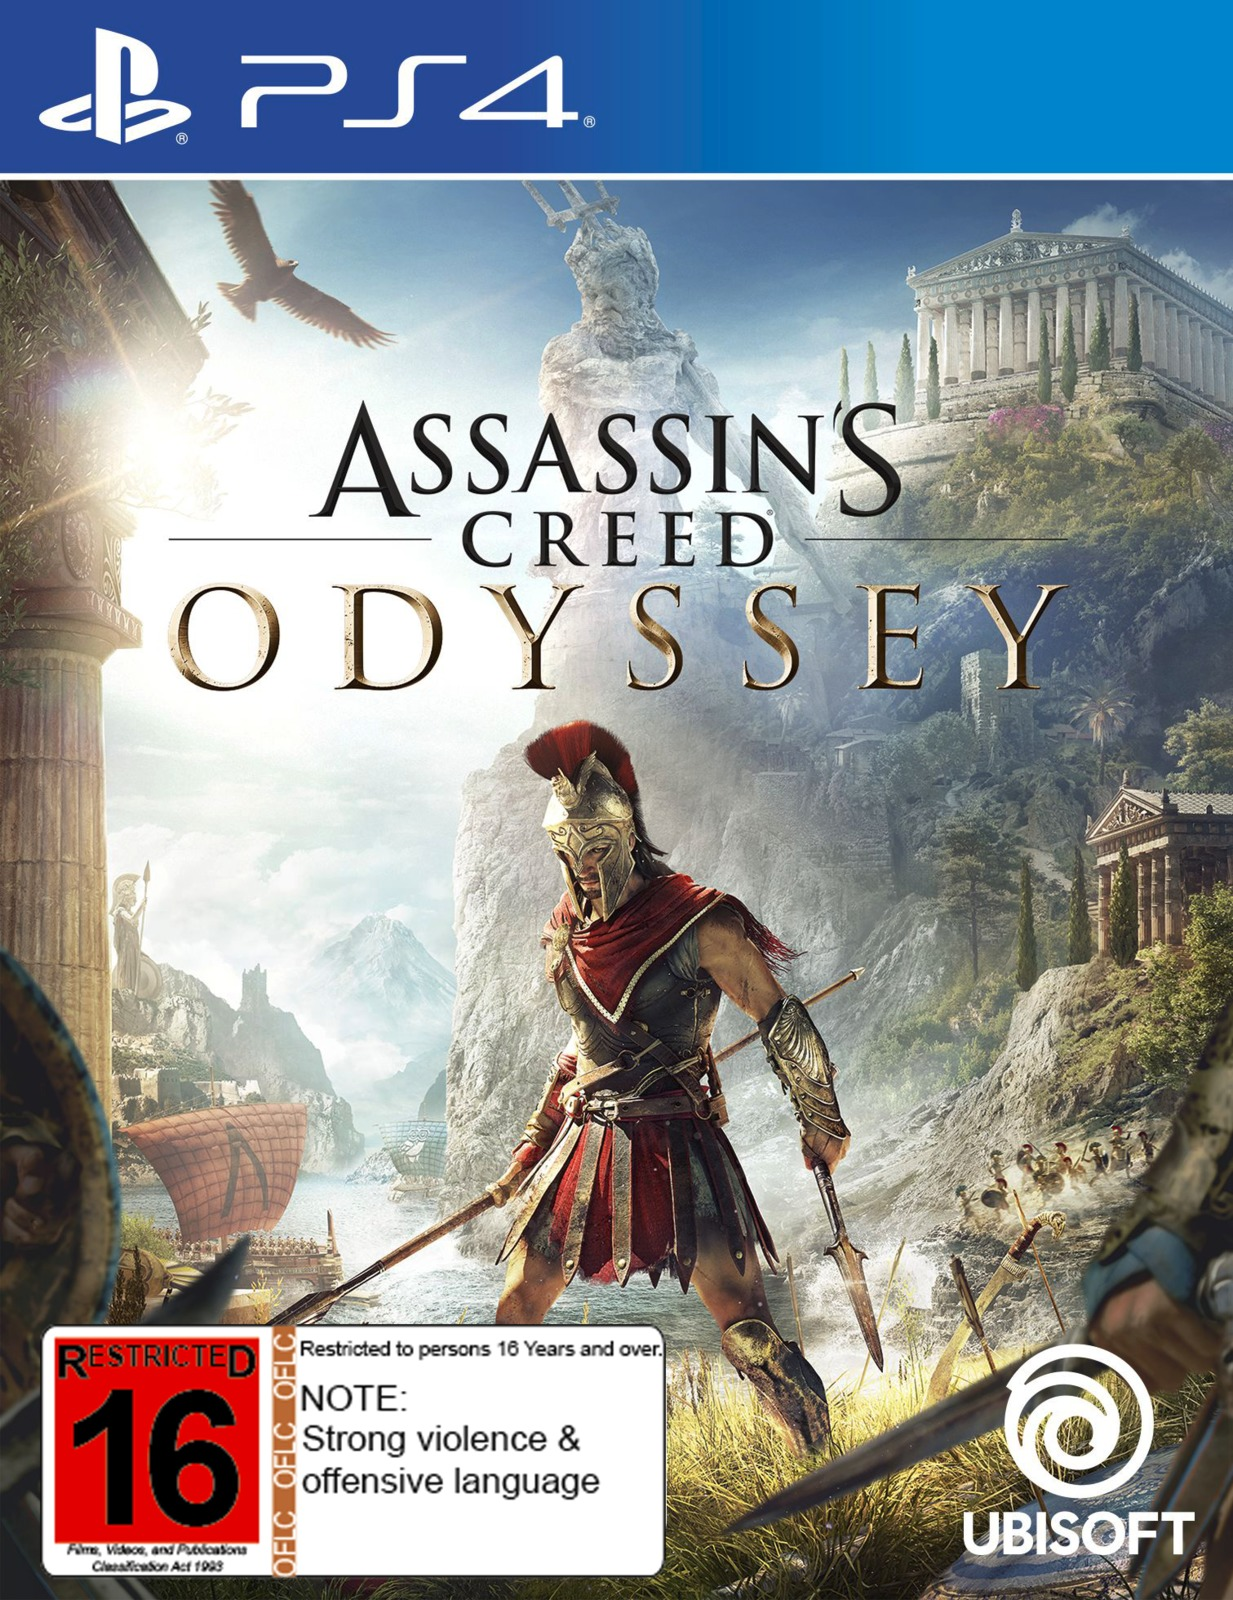 Assassin's Creed Odyssey for PS4 image